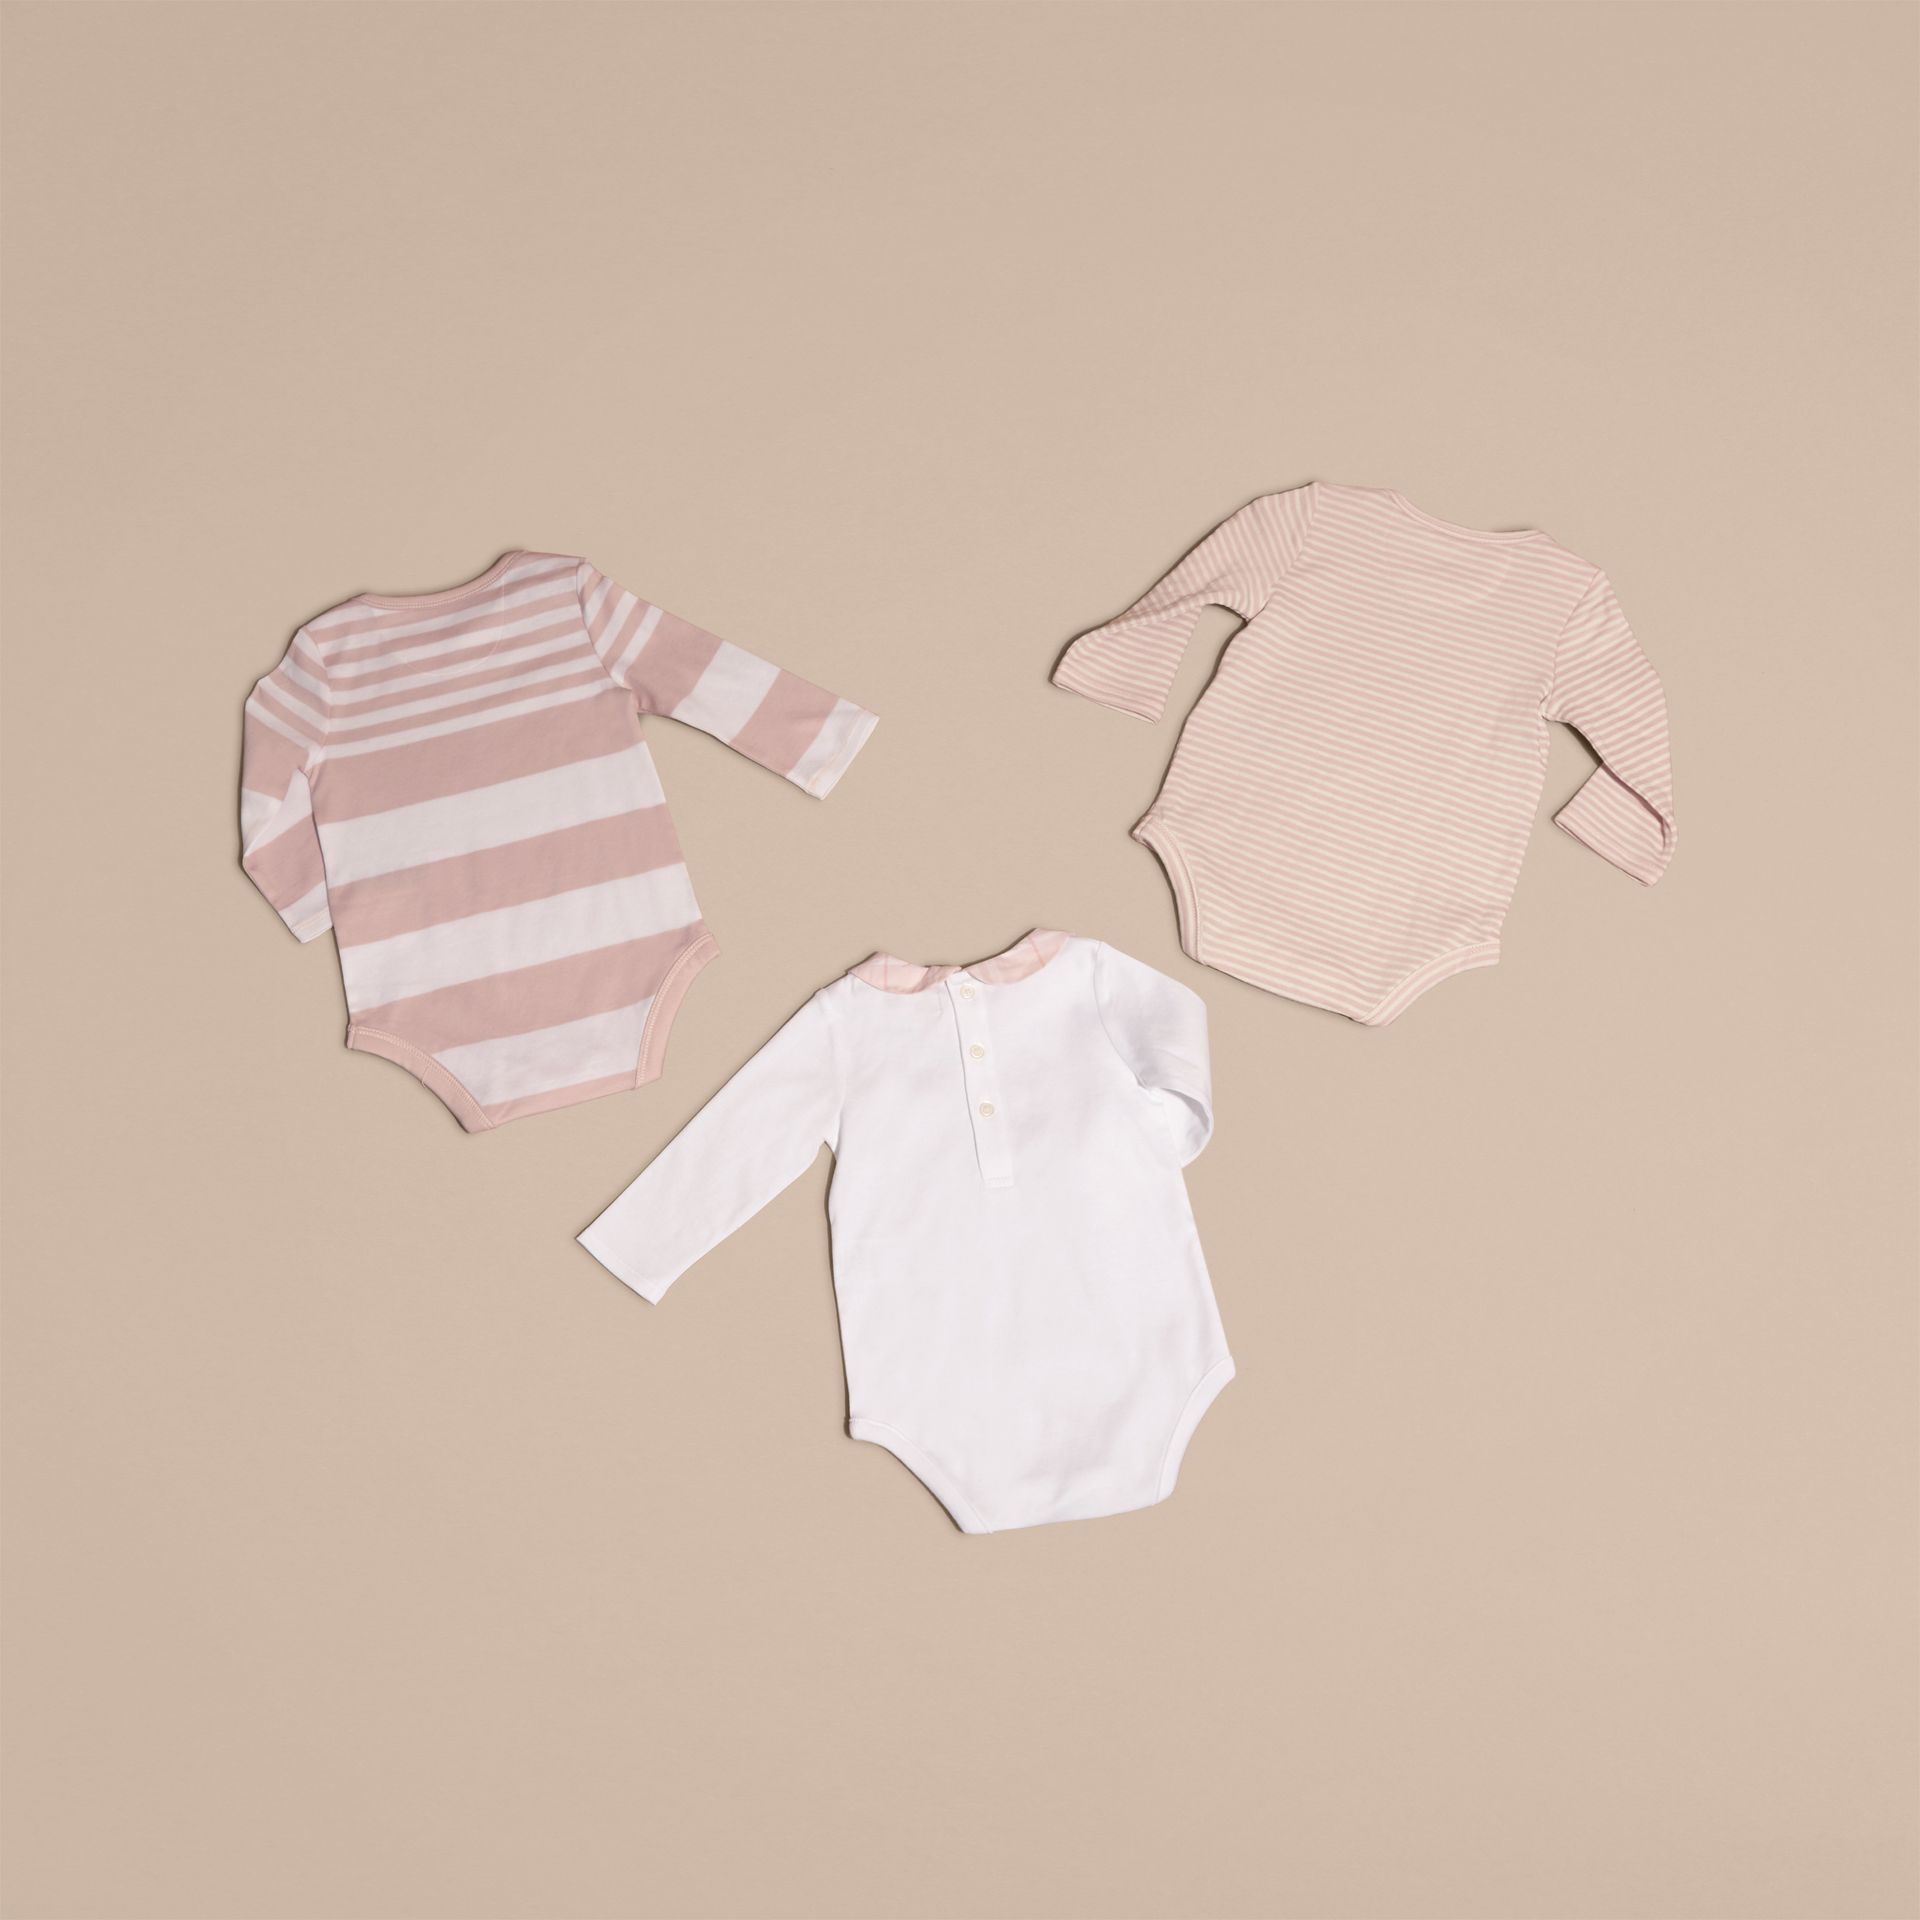 Patterned Cotton Blend Three-piece Baby Gift Set in Powder Pink - Children | Burberry - gallery image 3